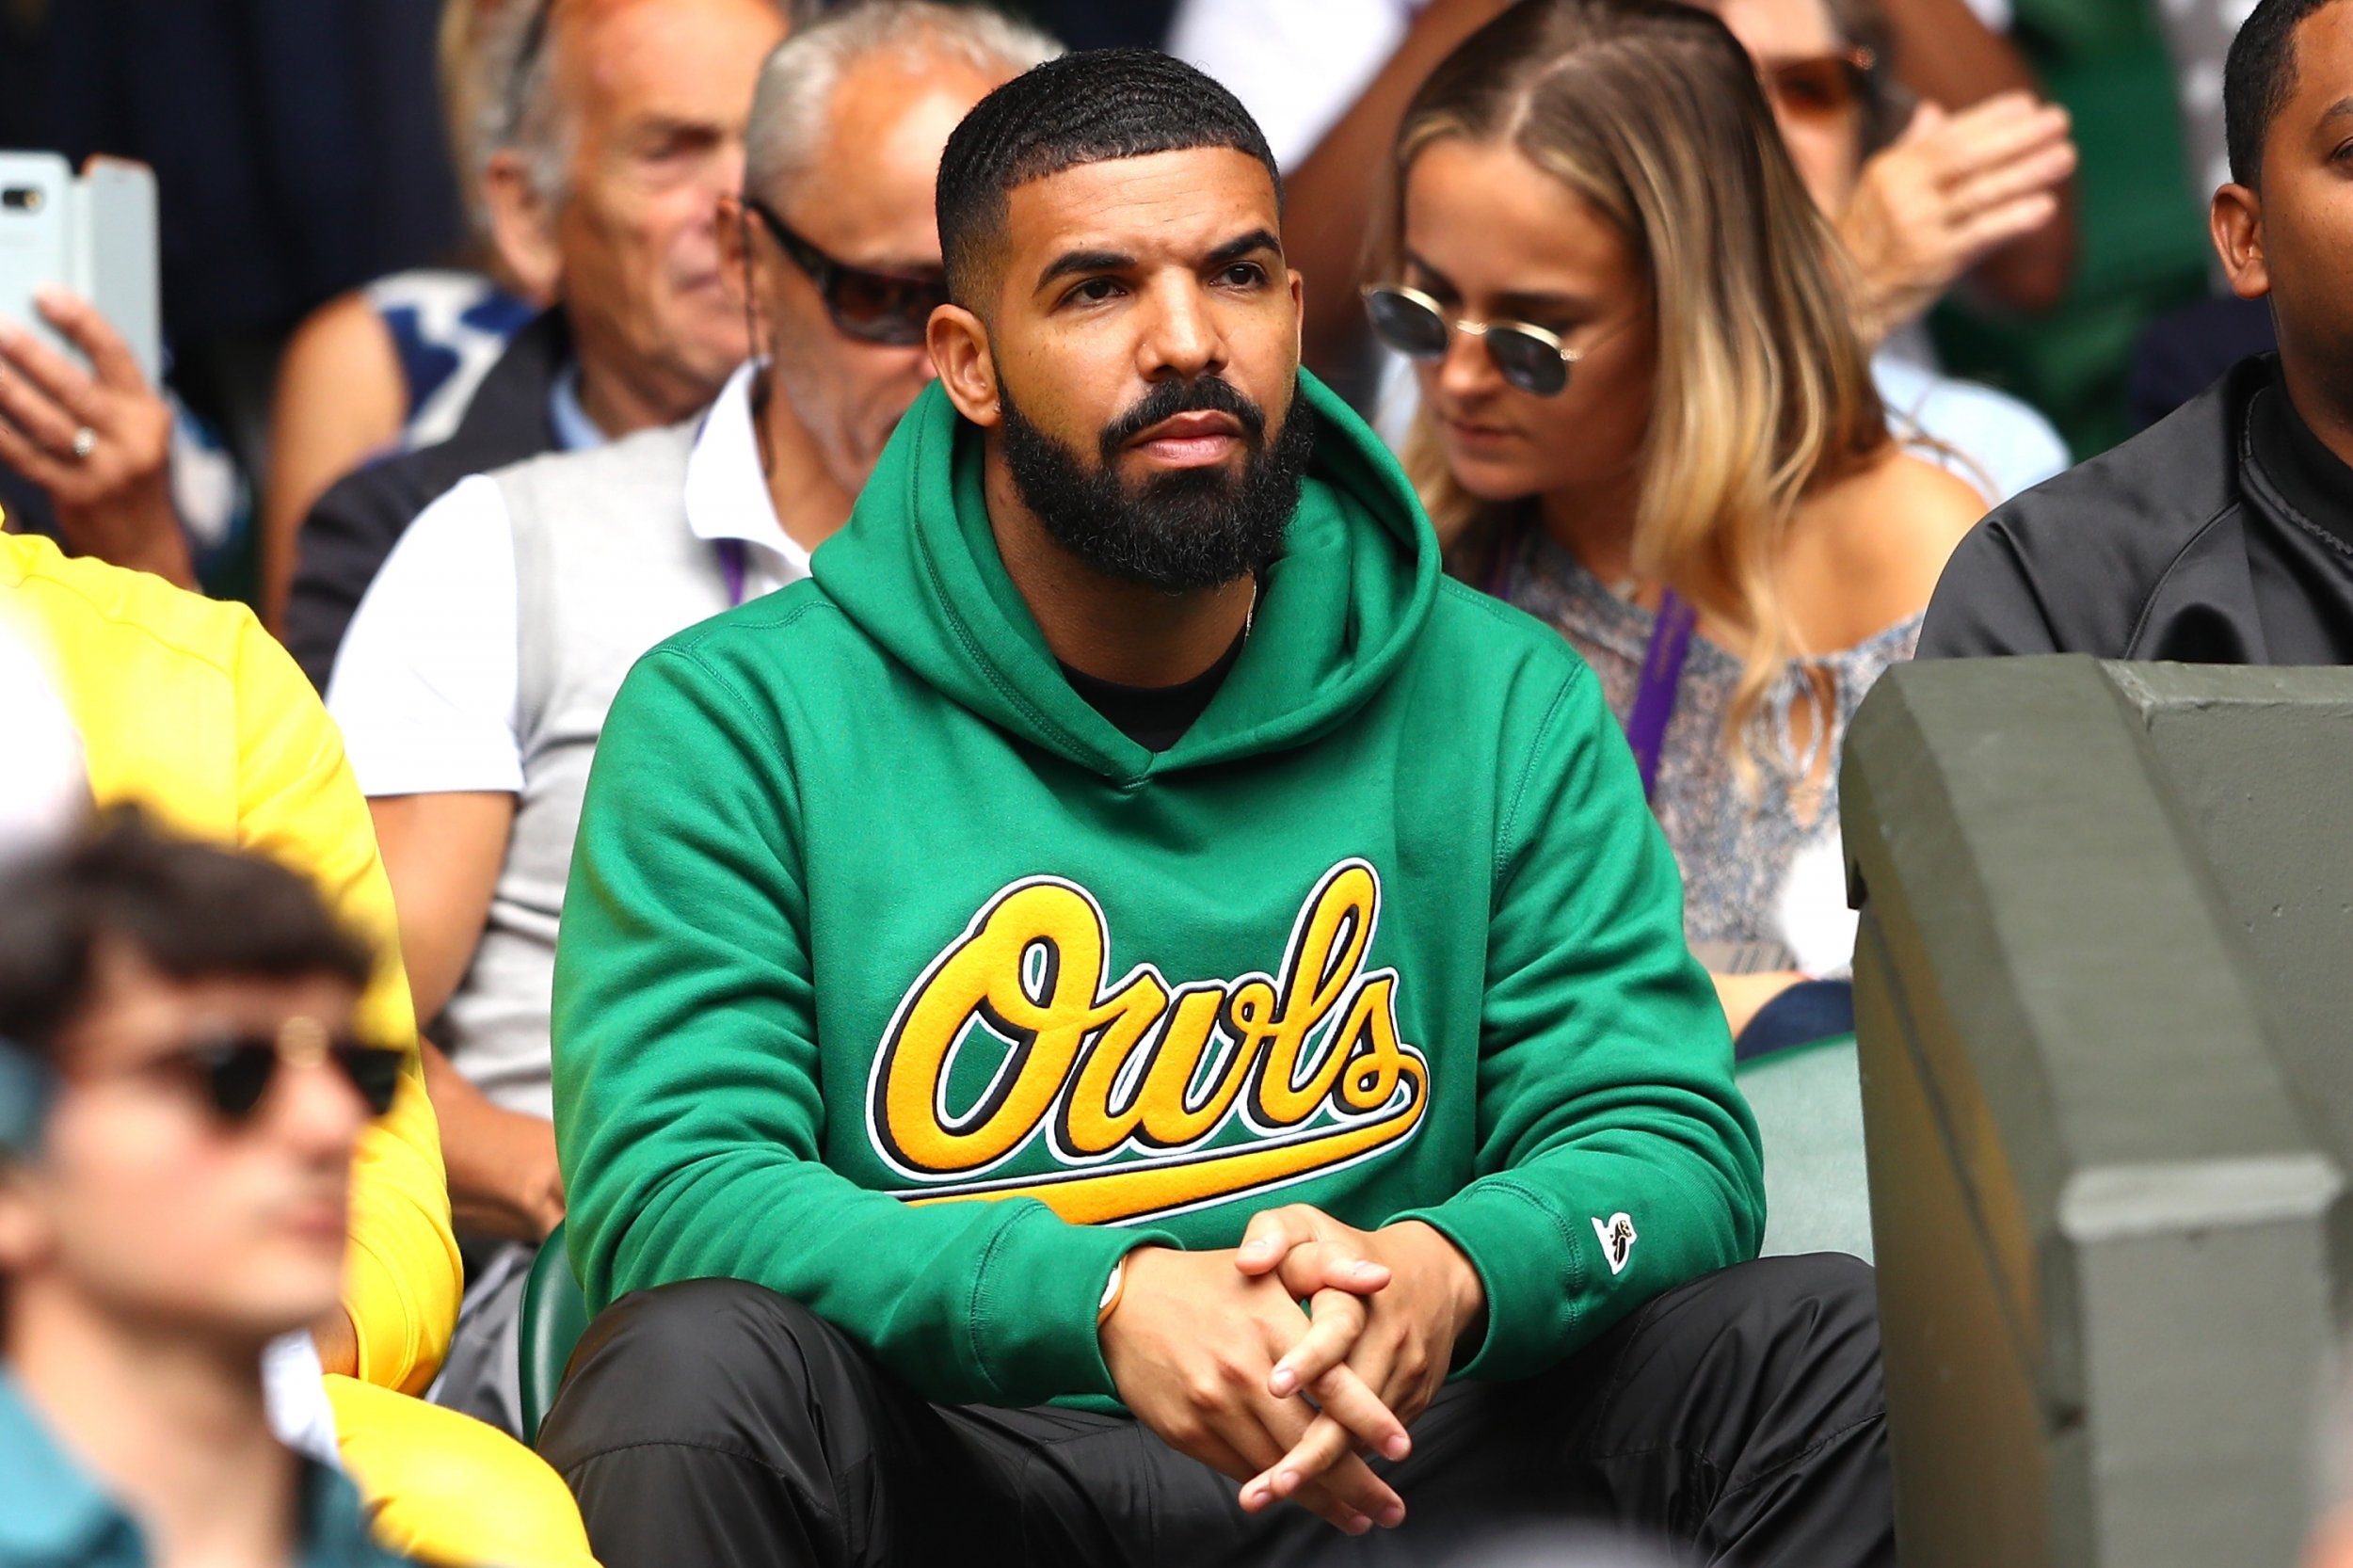 Drake Sports Curse Results in 'Ban' From Italian Soccer Team Posing in Photos With Him